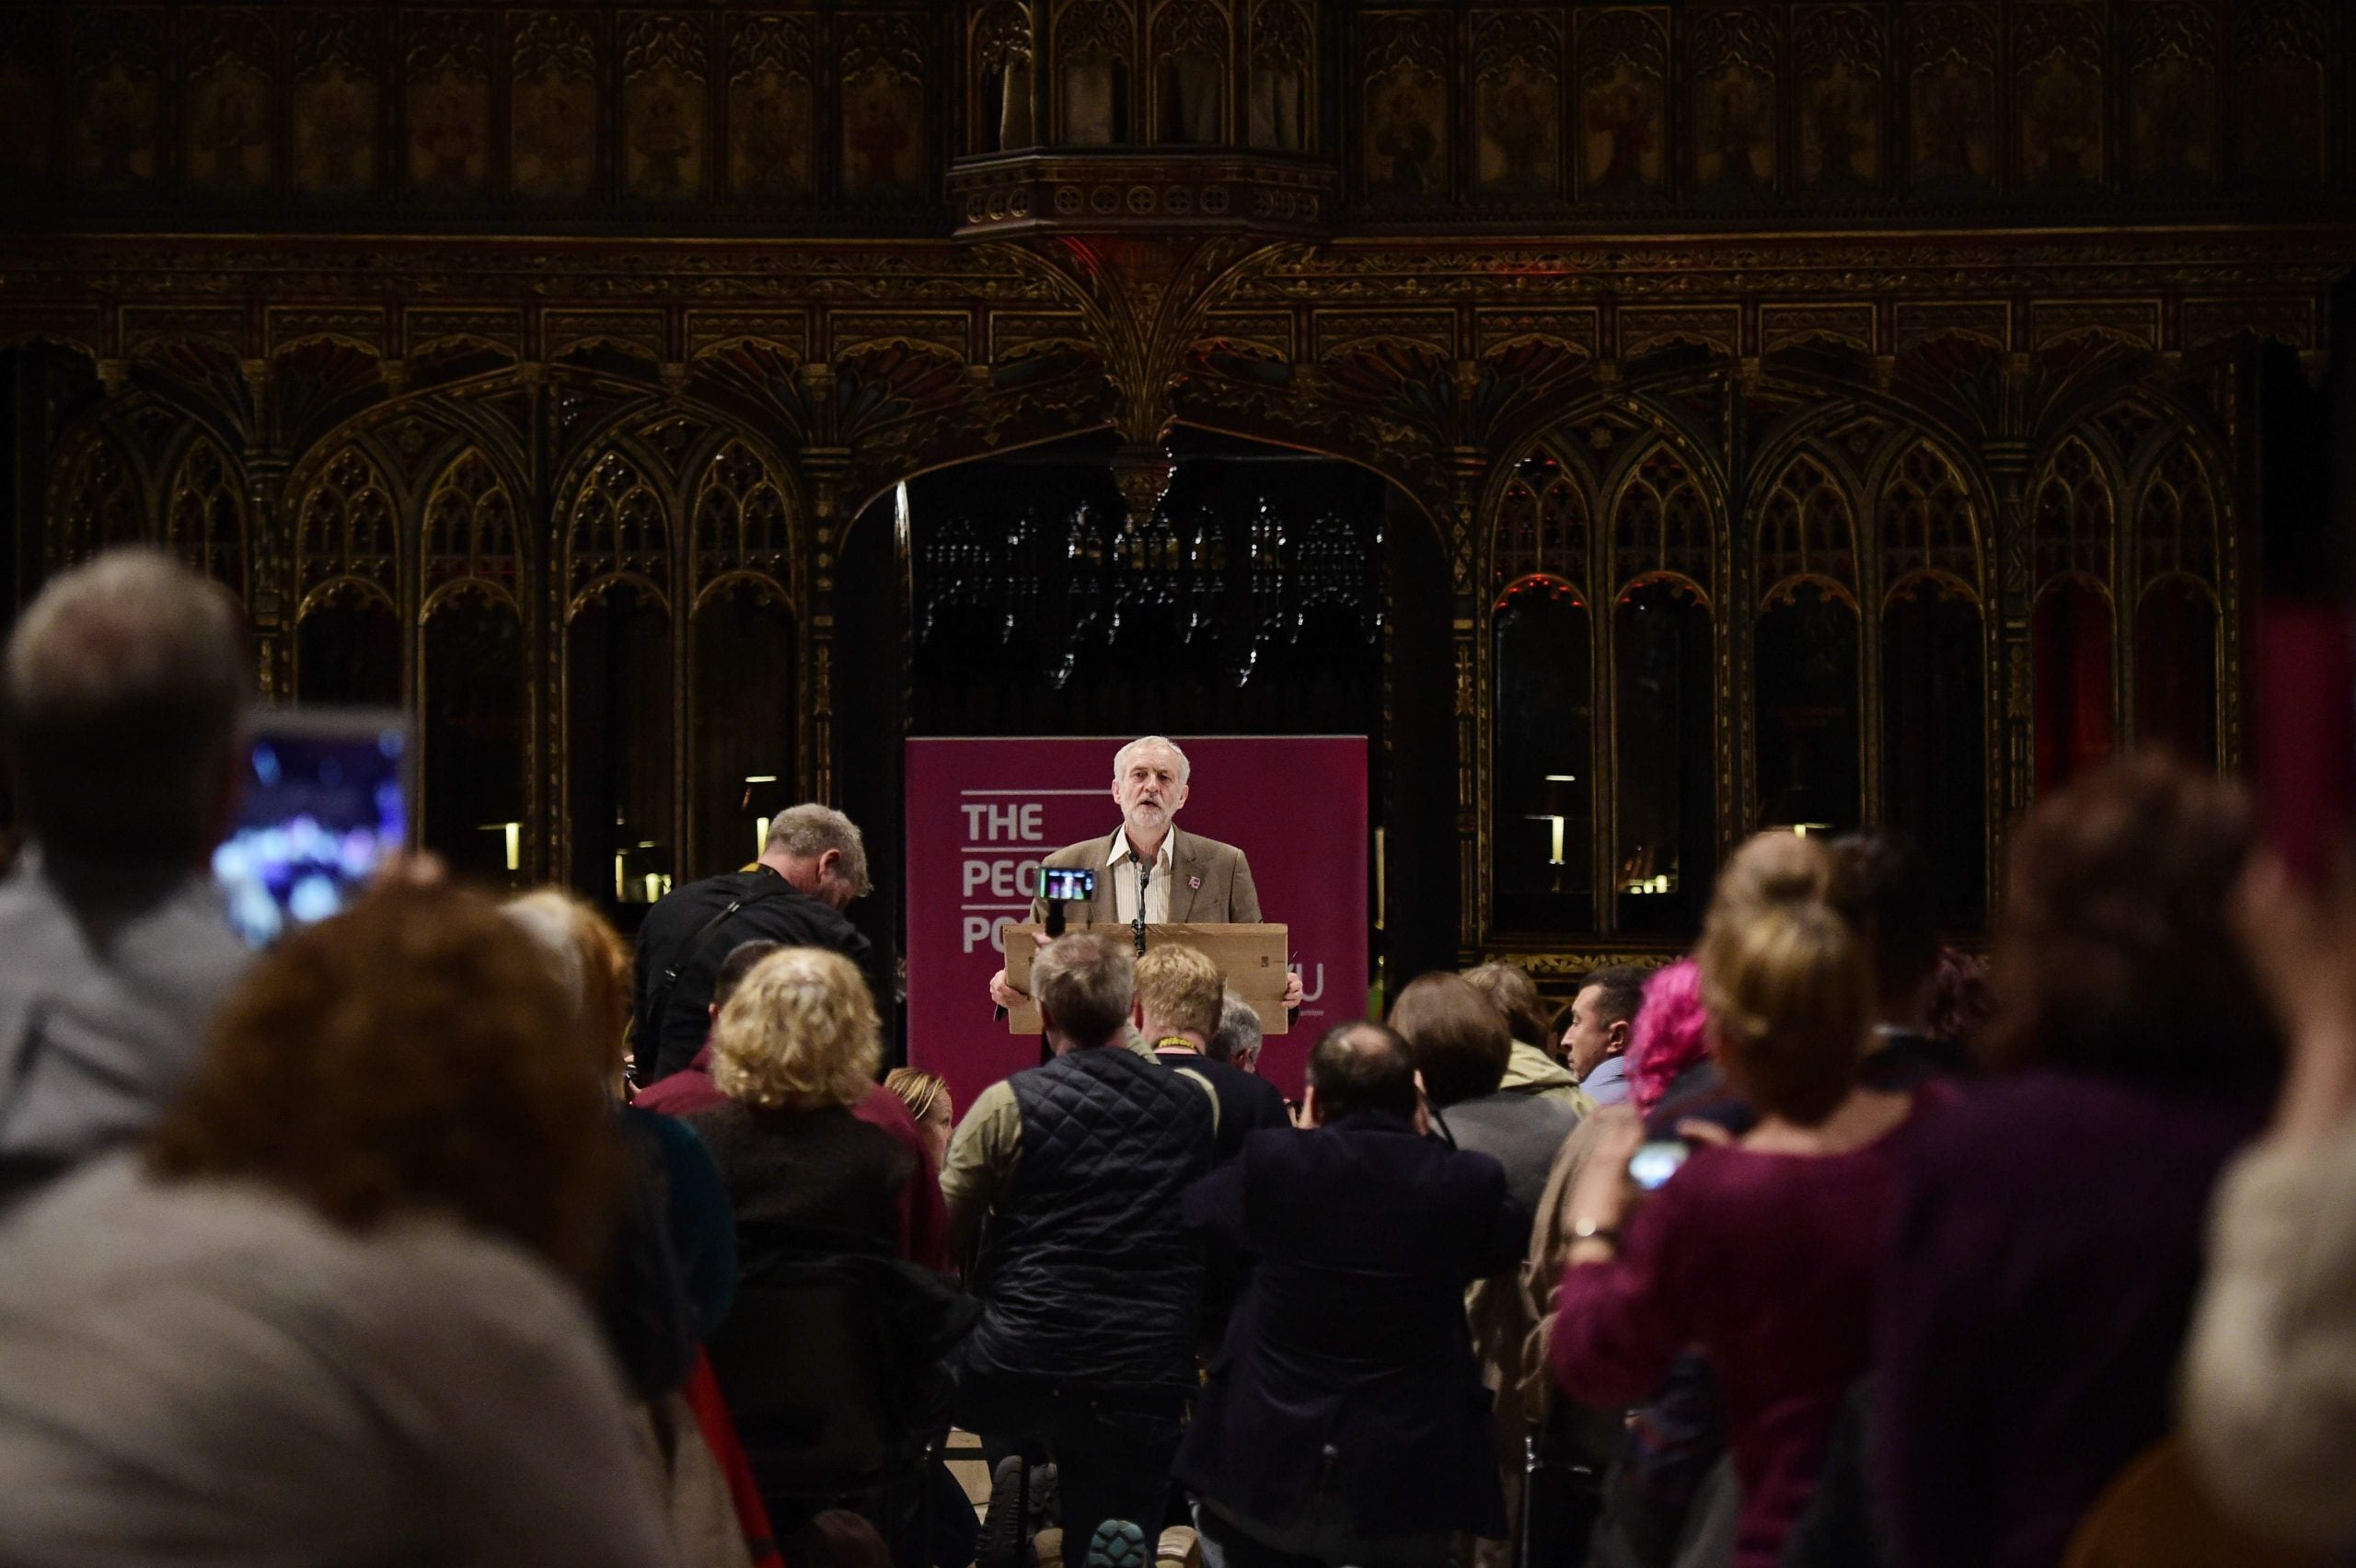 Why Labour lost and how it can win: an essay on rebuilding a broad church